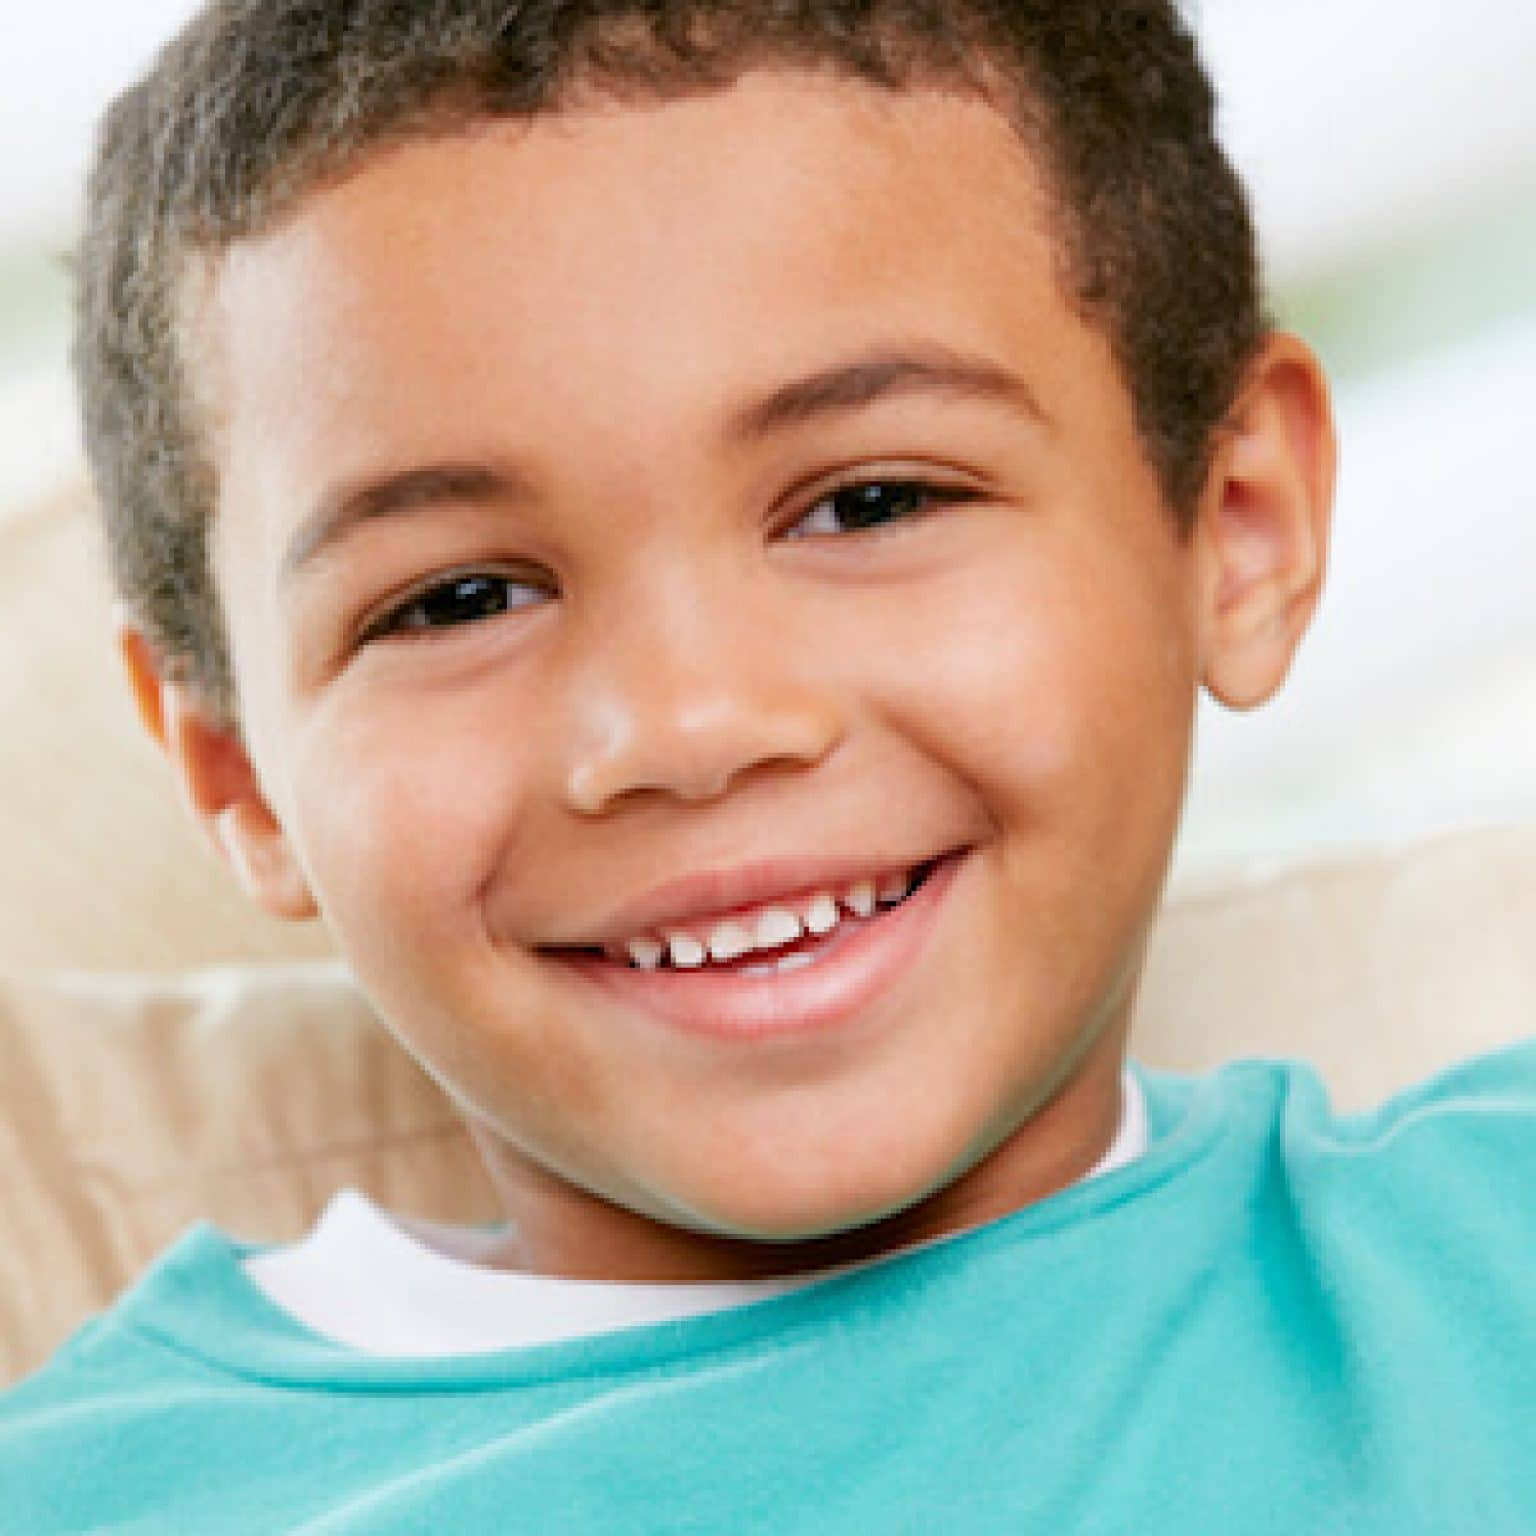 Teeth Care For Newborns and Toddlers